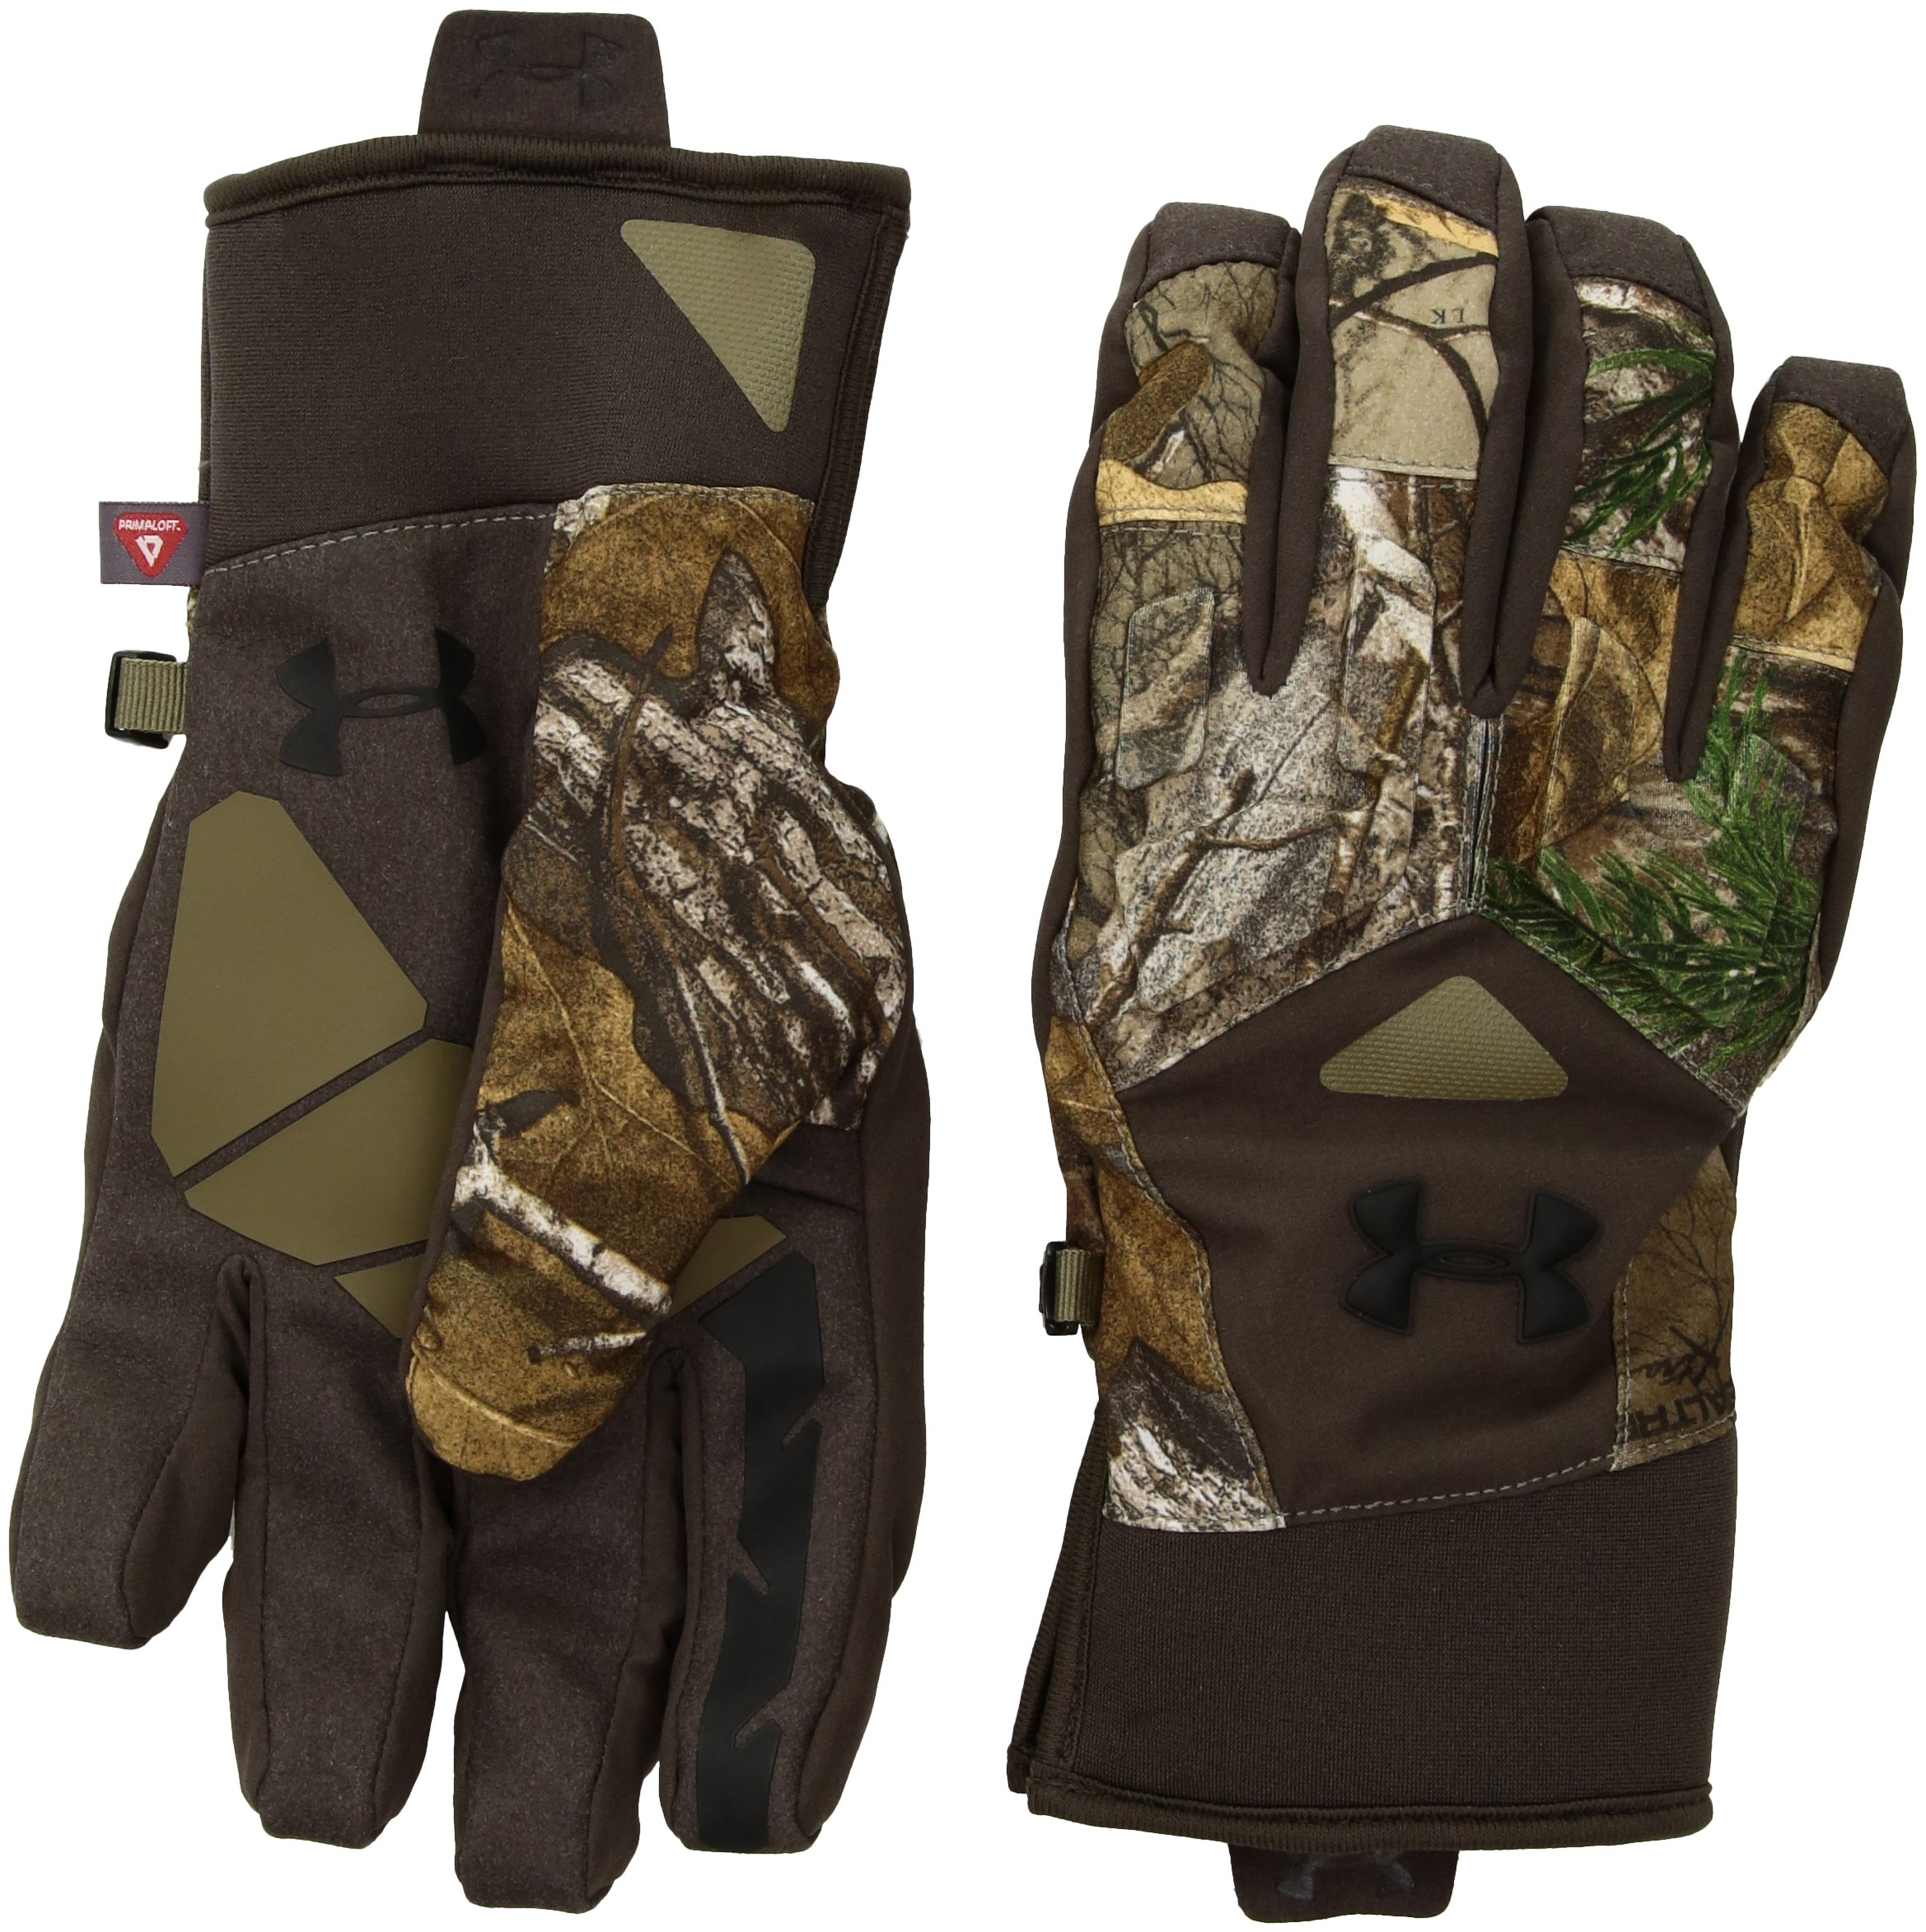 Under Armour Men's Scent Control Primer 2.0 Gloves, Realtree Ap-Xtra (946)/Black, Small/Medium by Under Armour